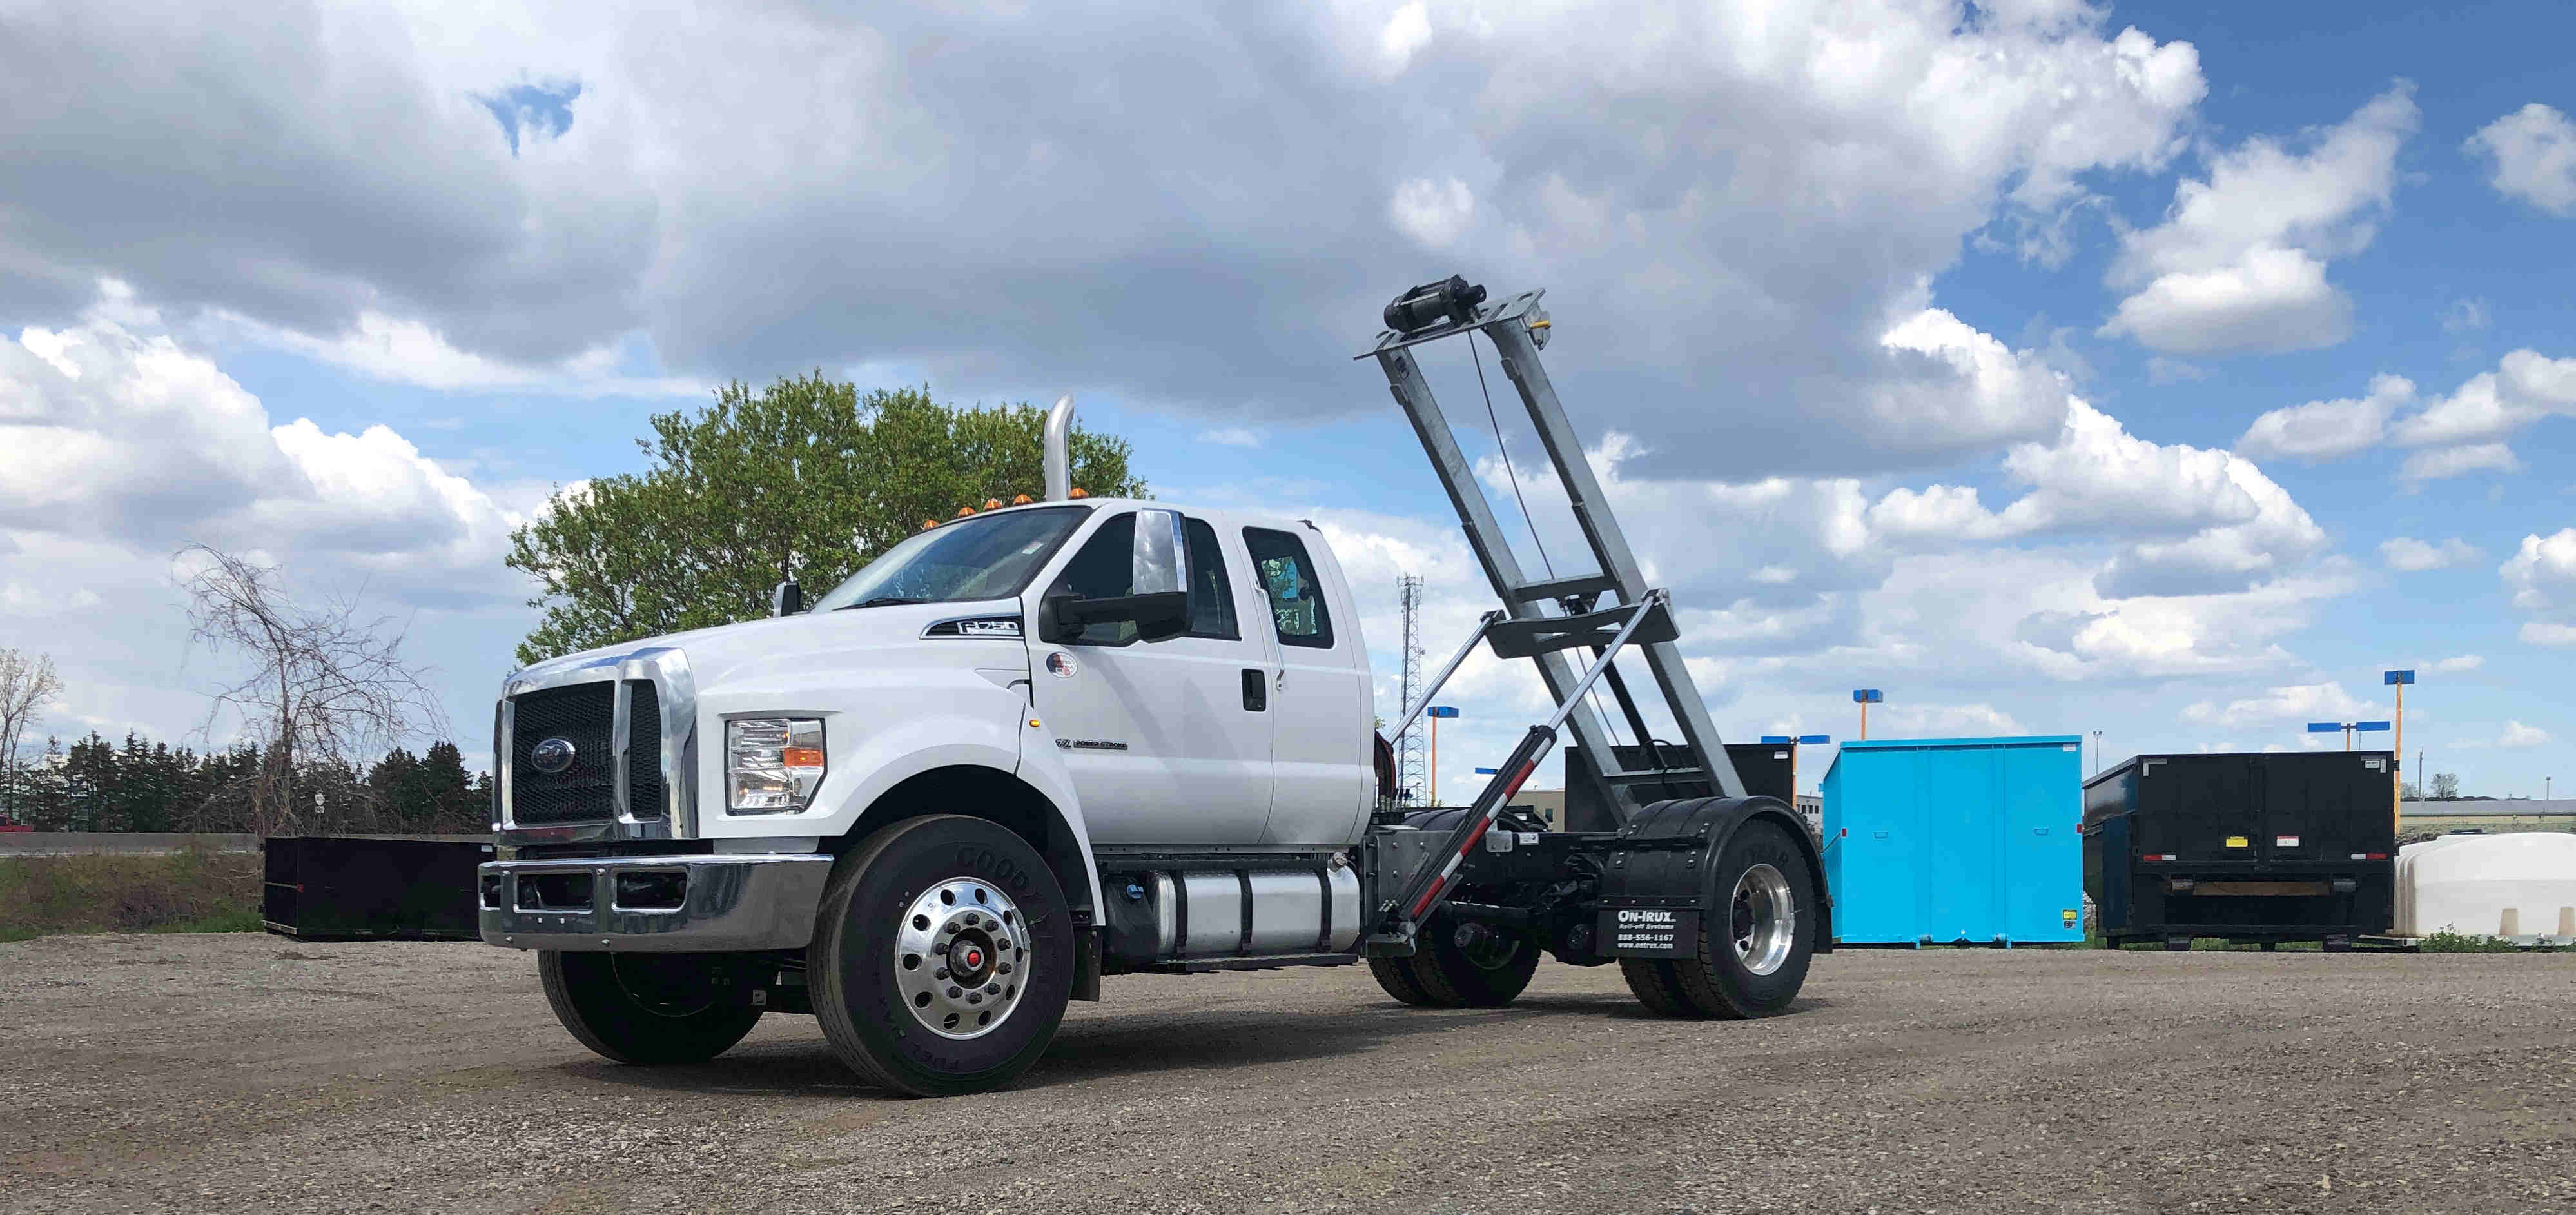 2021 Ford F750 12 On Trux System White (1)